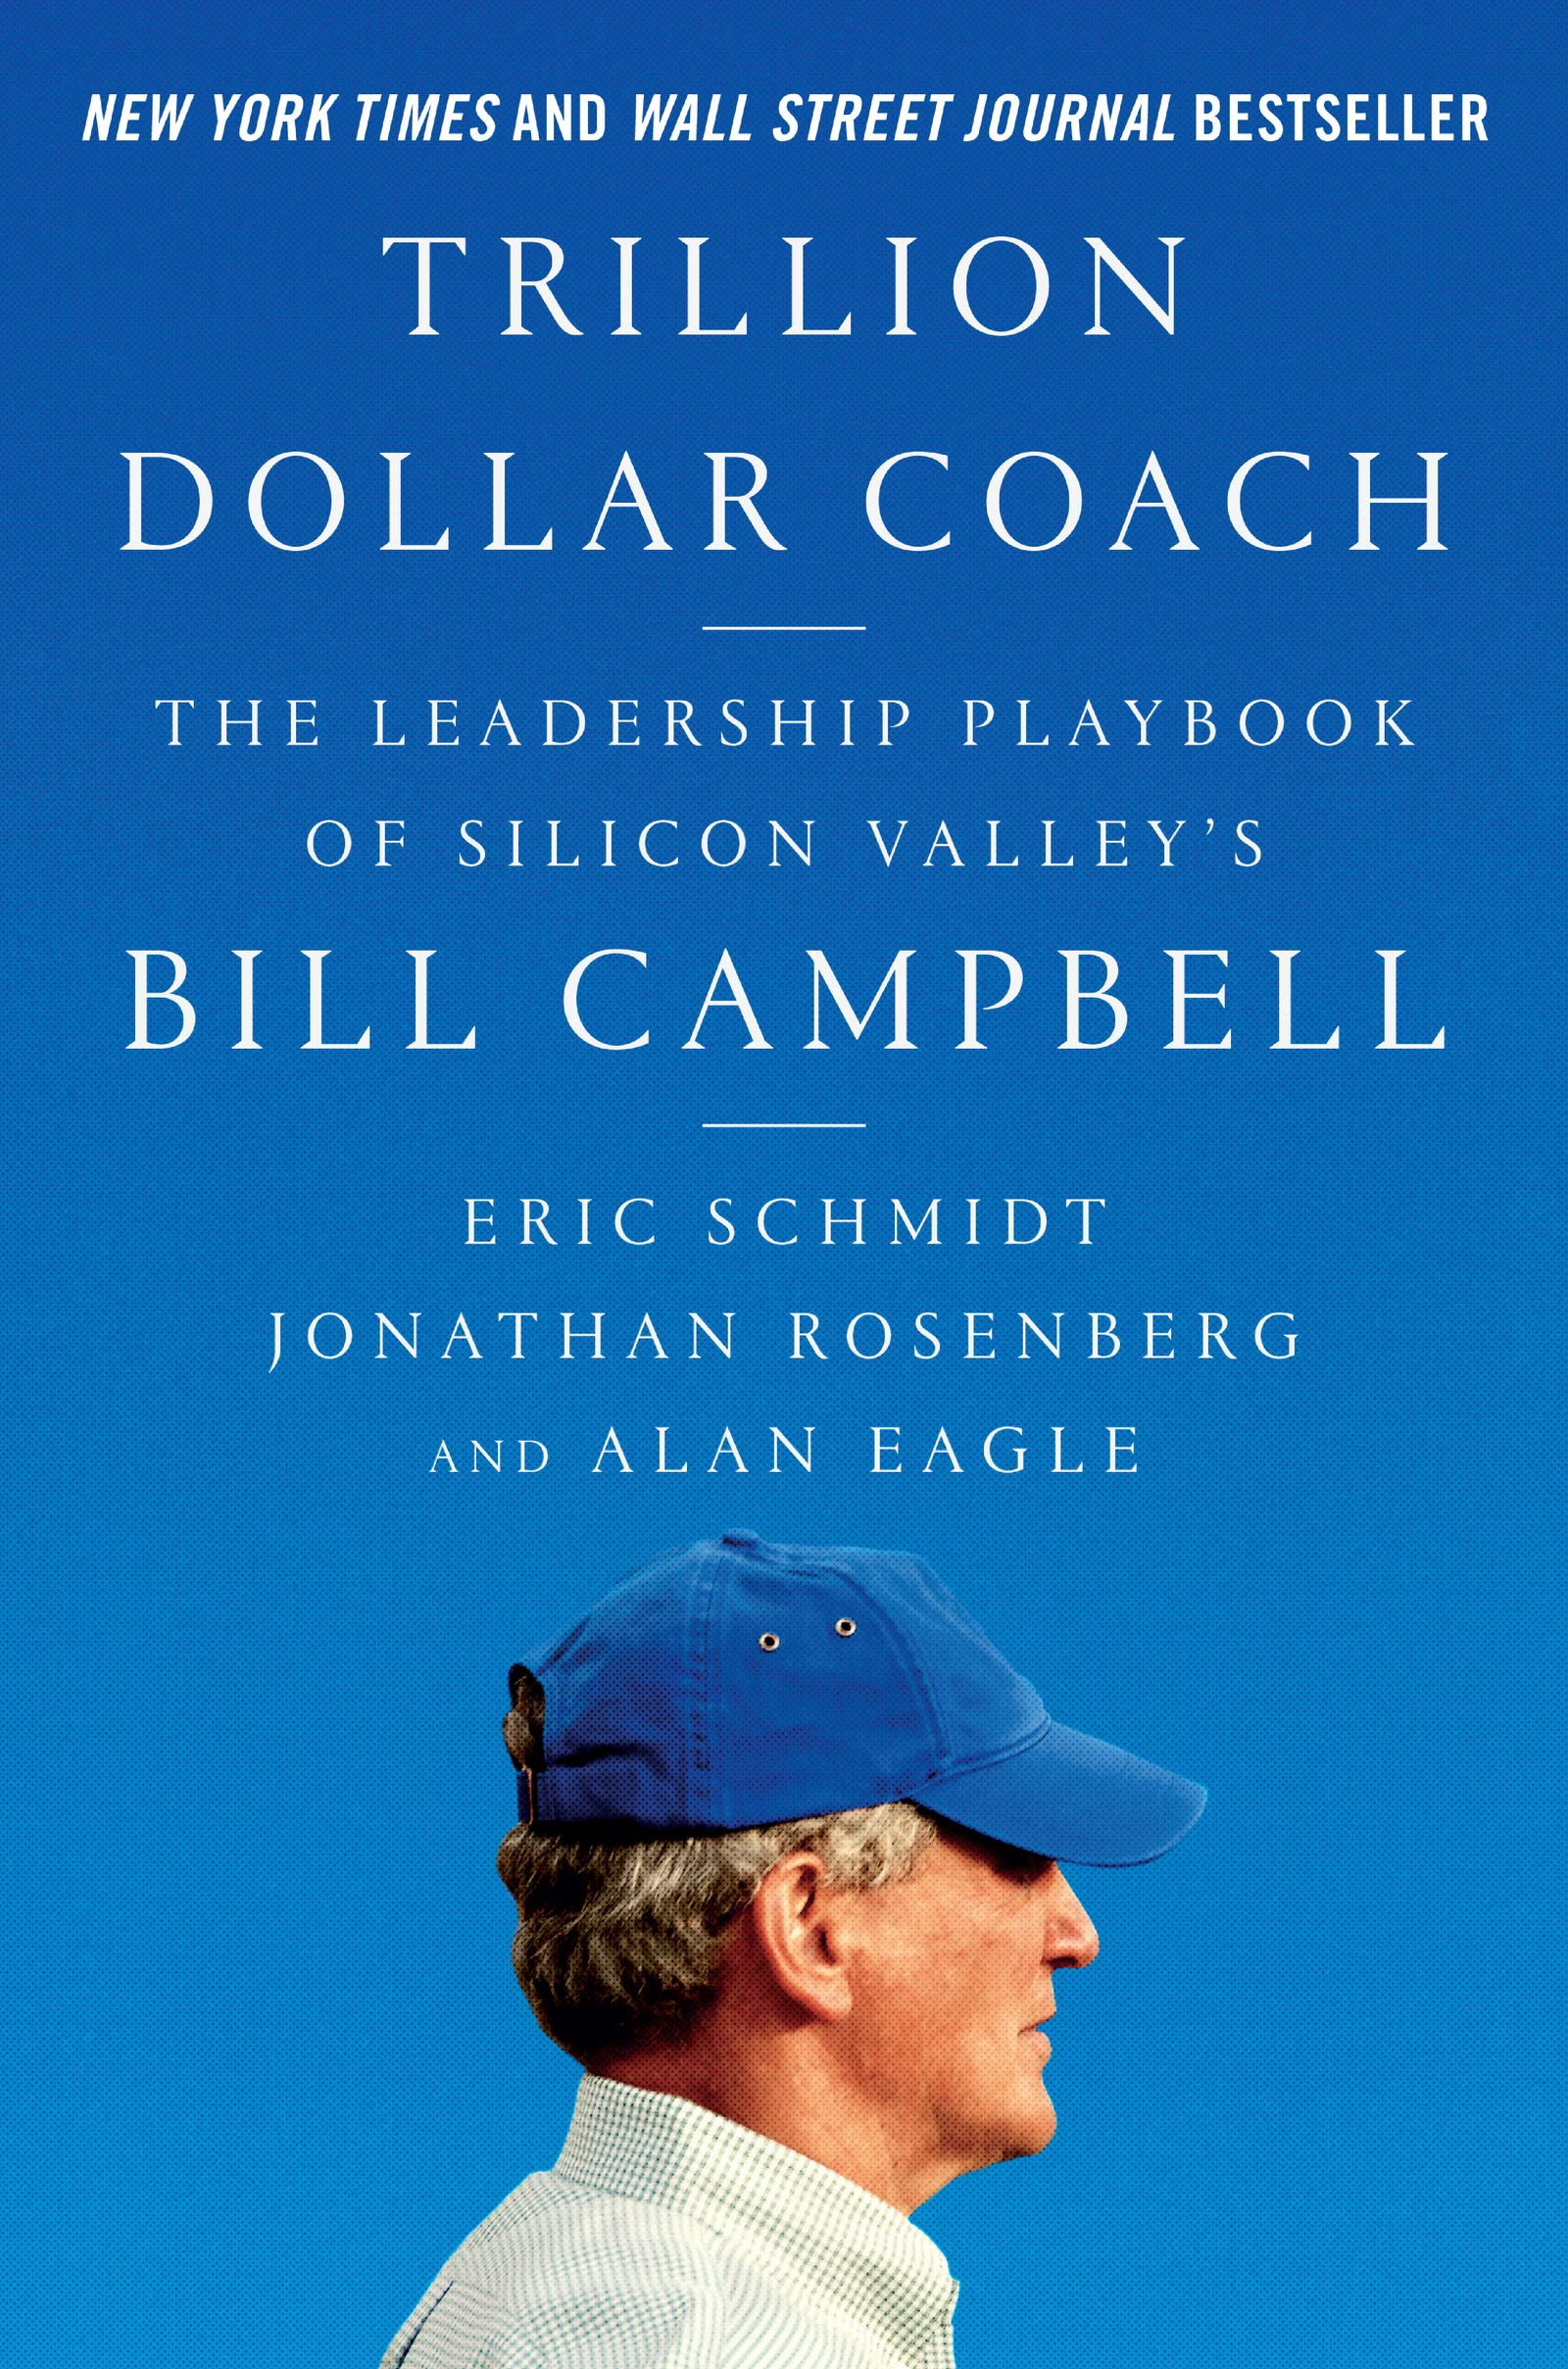 Trillion Dollar Coach: The Leadership Playbook of Silicon Valley's Bill Campbell by HarperBusiness